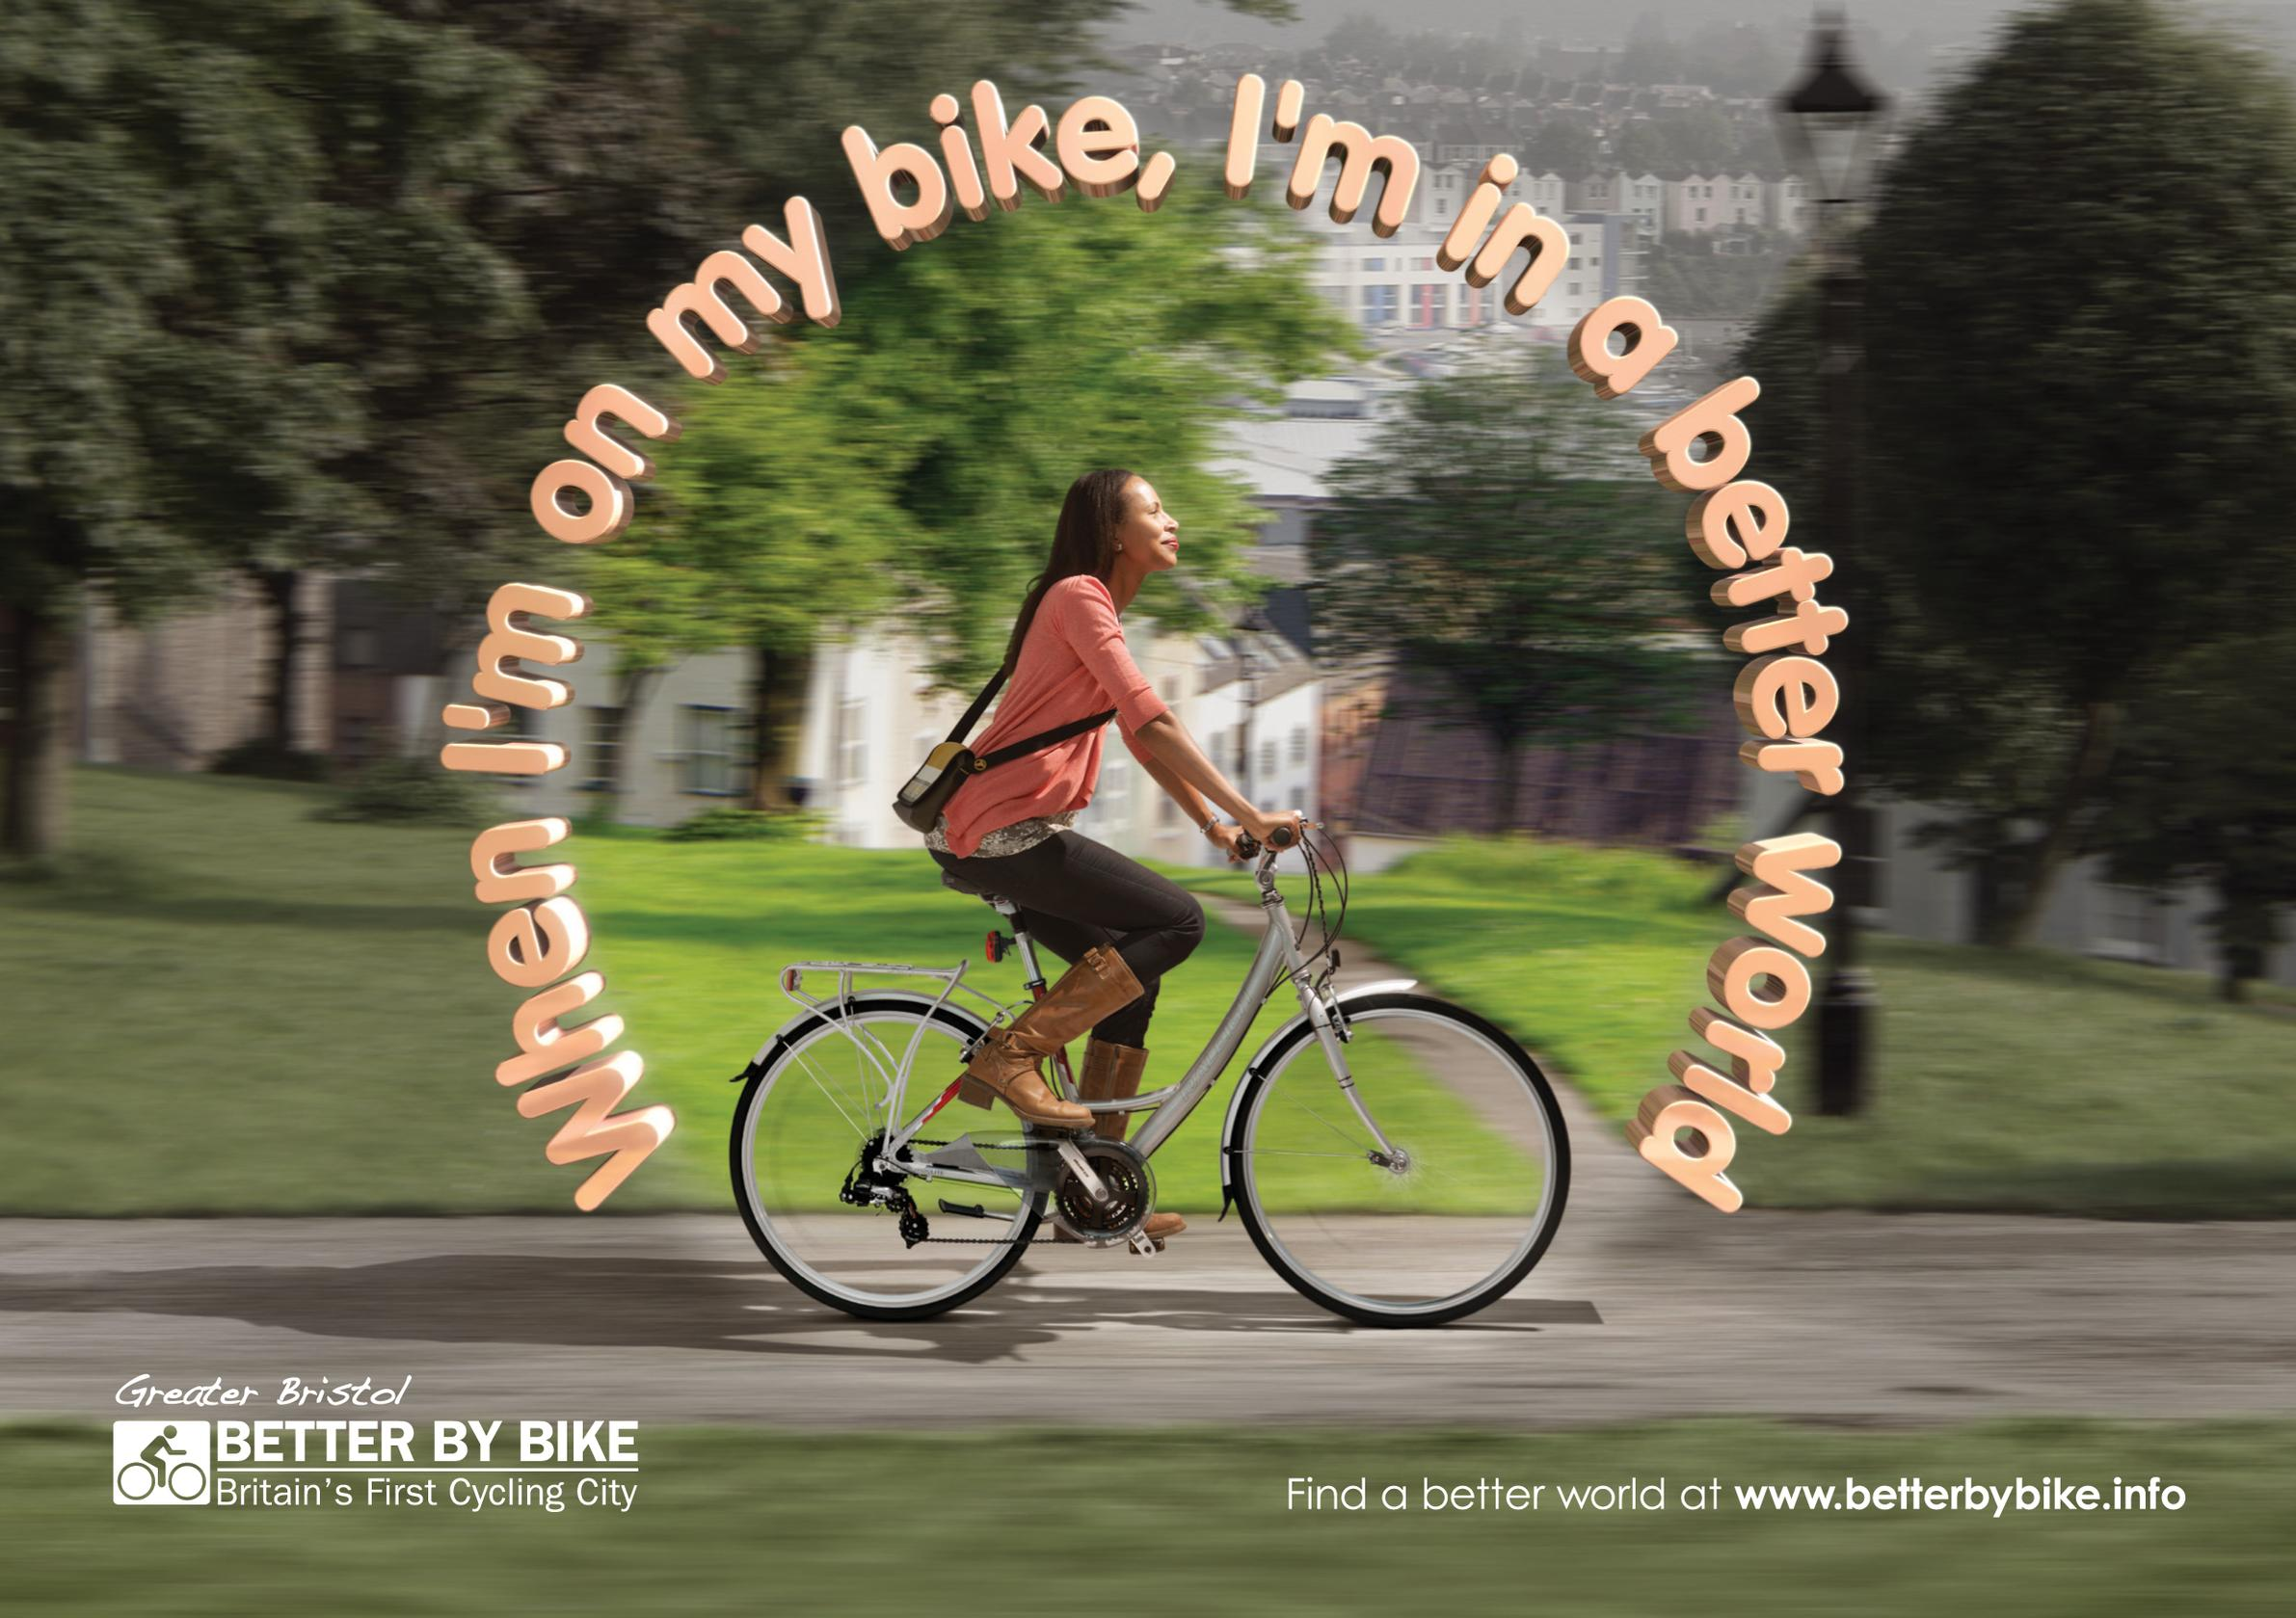 Bristol City Council's cycle promotion campaign adopted a celebratory rather than preachy tone